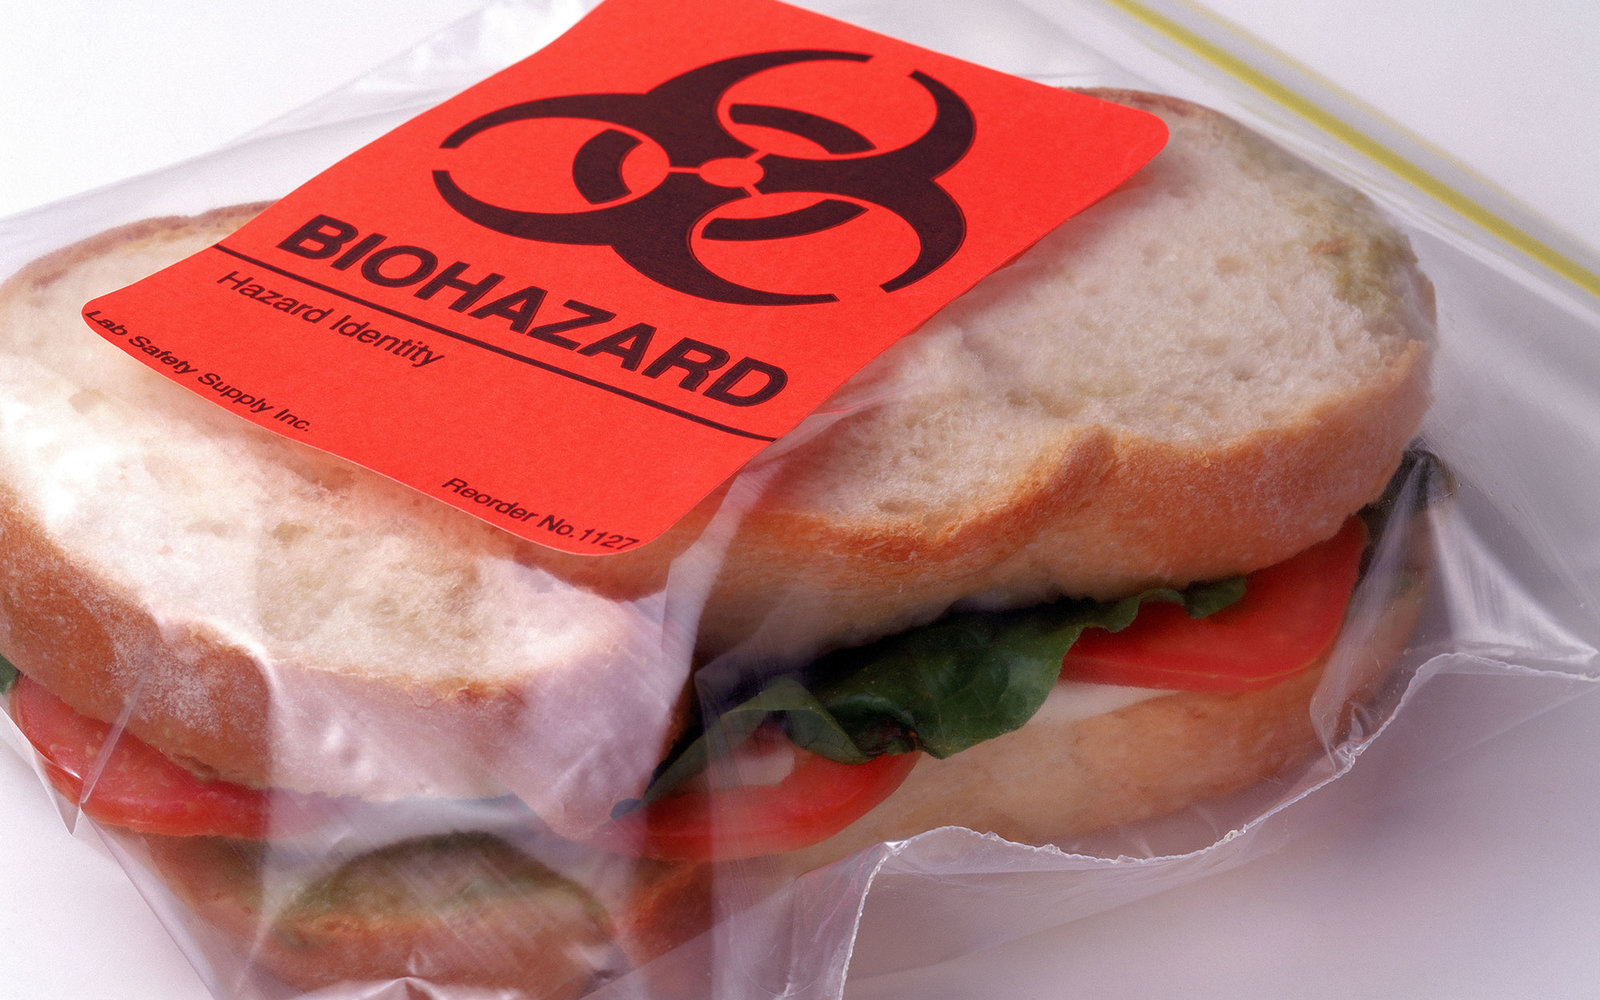 Sandwich in plastic bag with biohazard sticker